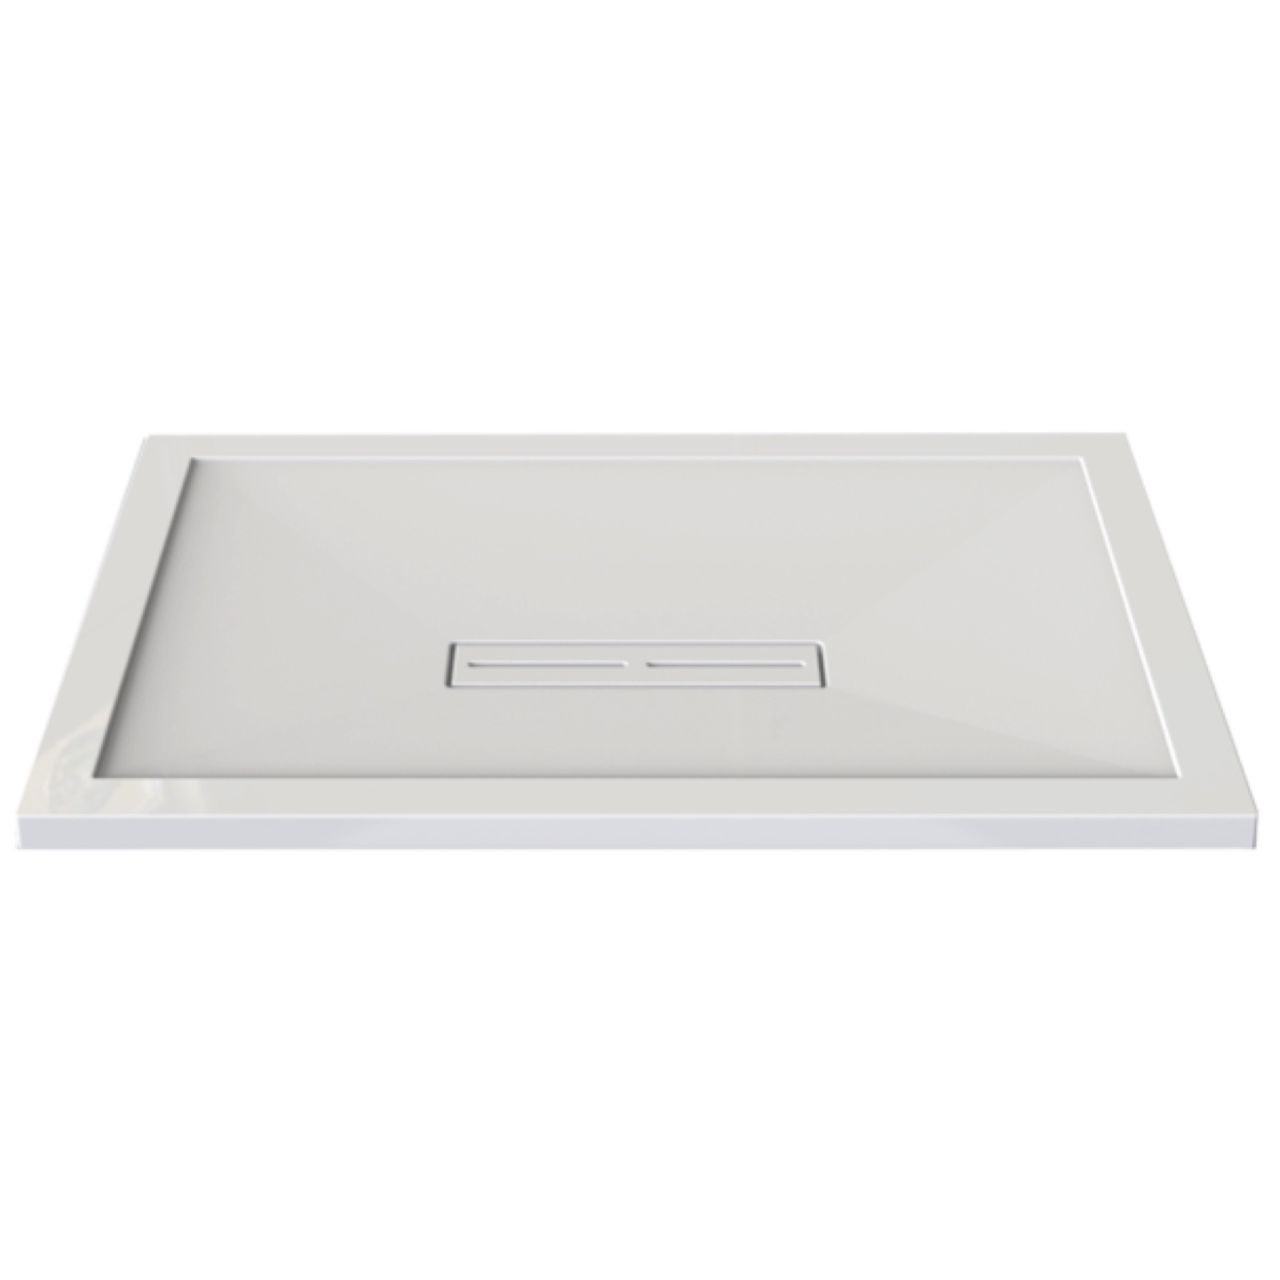 Kudos Connect2 800mm x 800mm x 35mm Square Shower Tray - C2T80